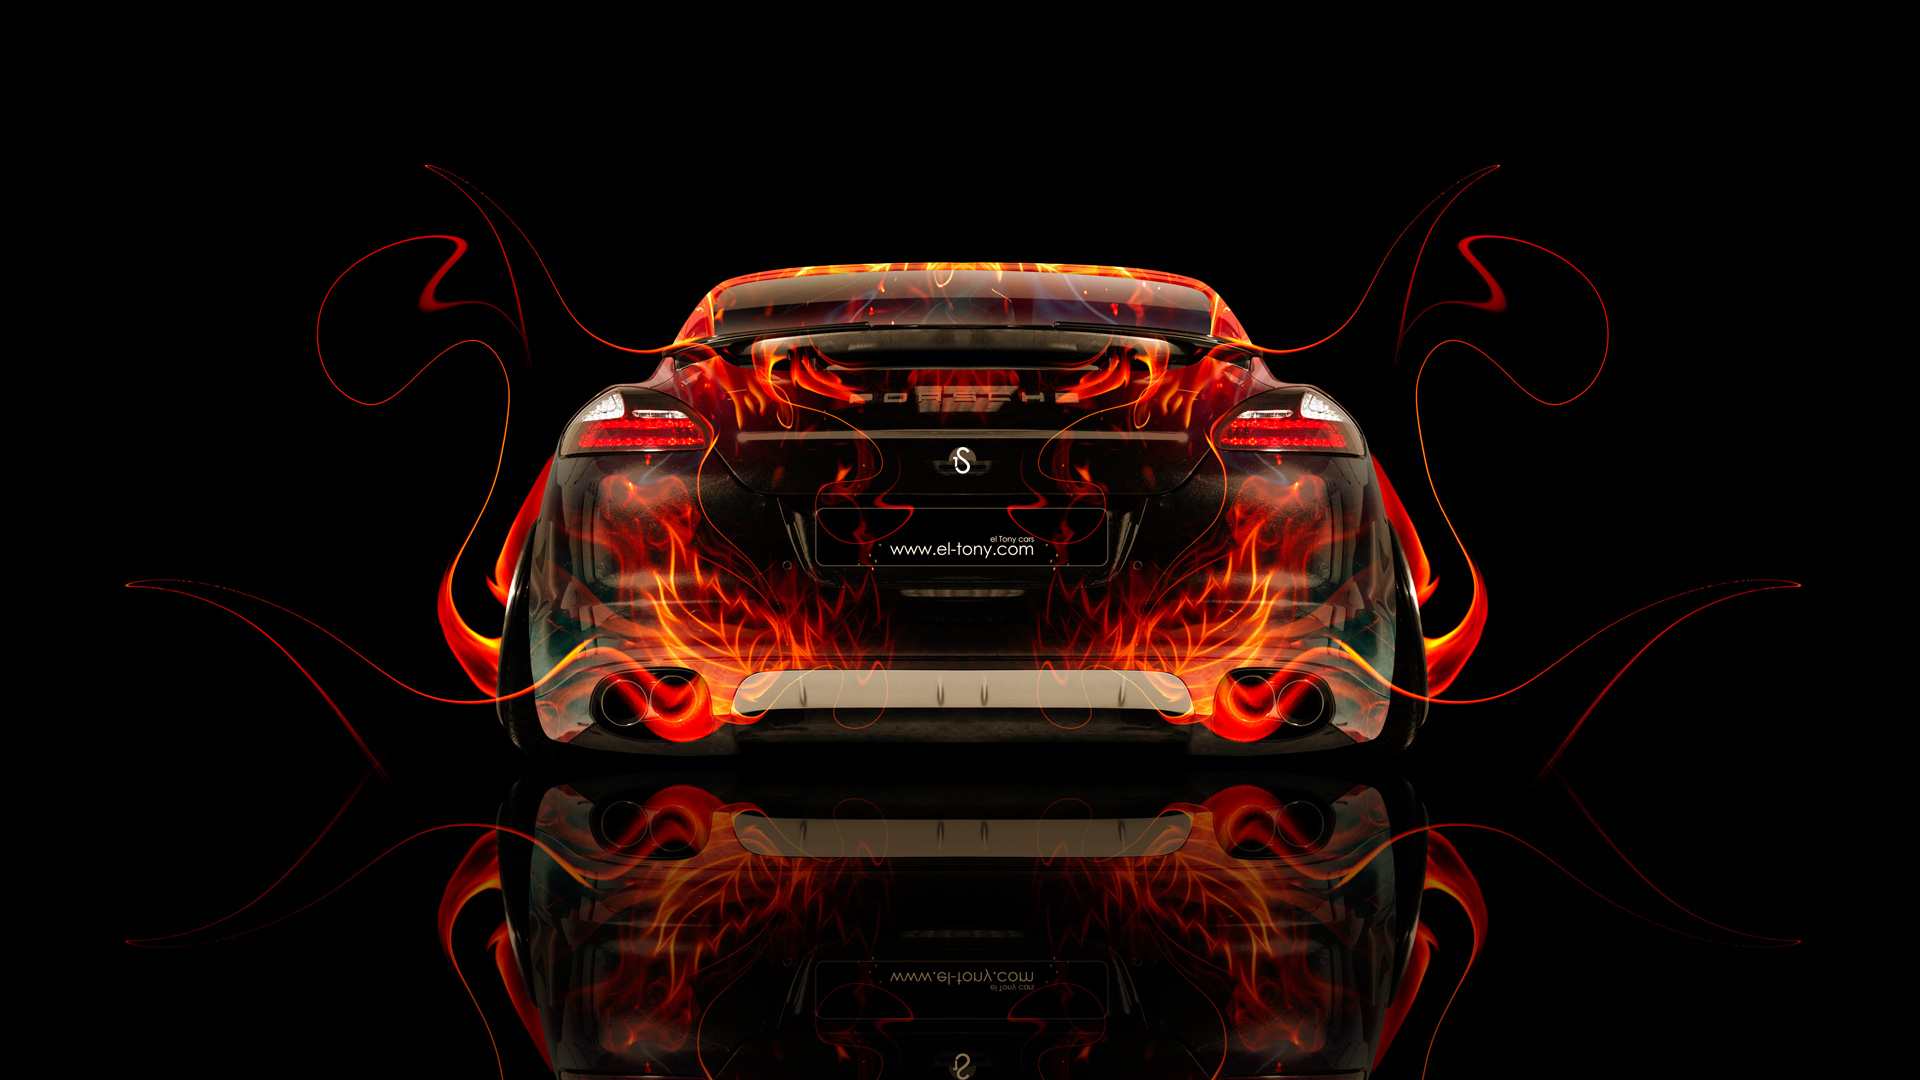 Merveilleux ... Porsche Panamera Back Fire Abstract Car 2014